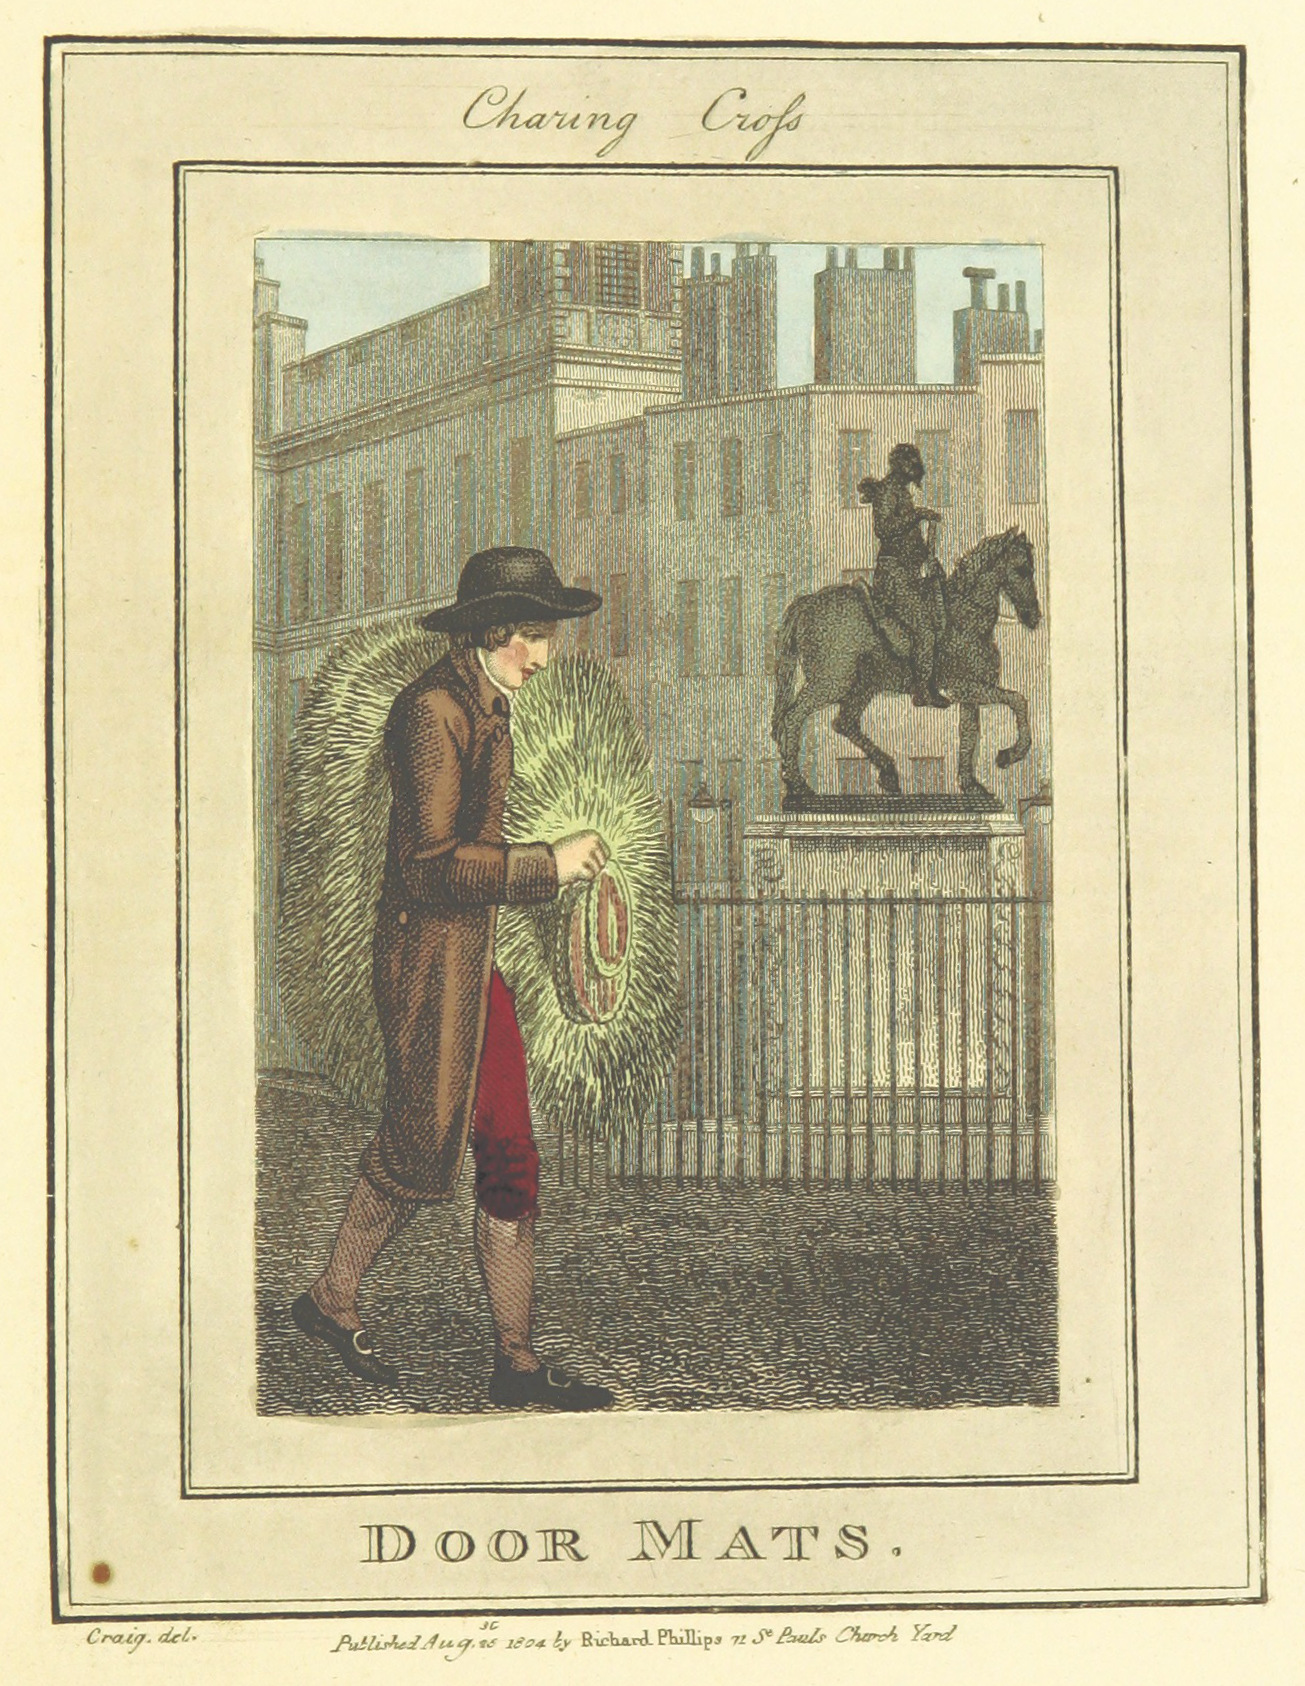 Phillips(1804)_p589_-_Charing_Cross_-_Door_Mats